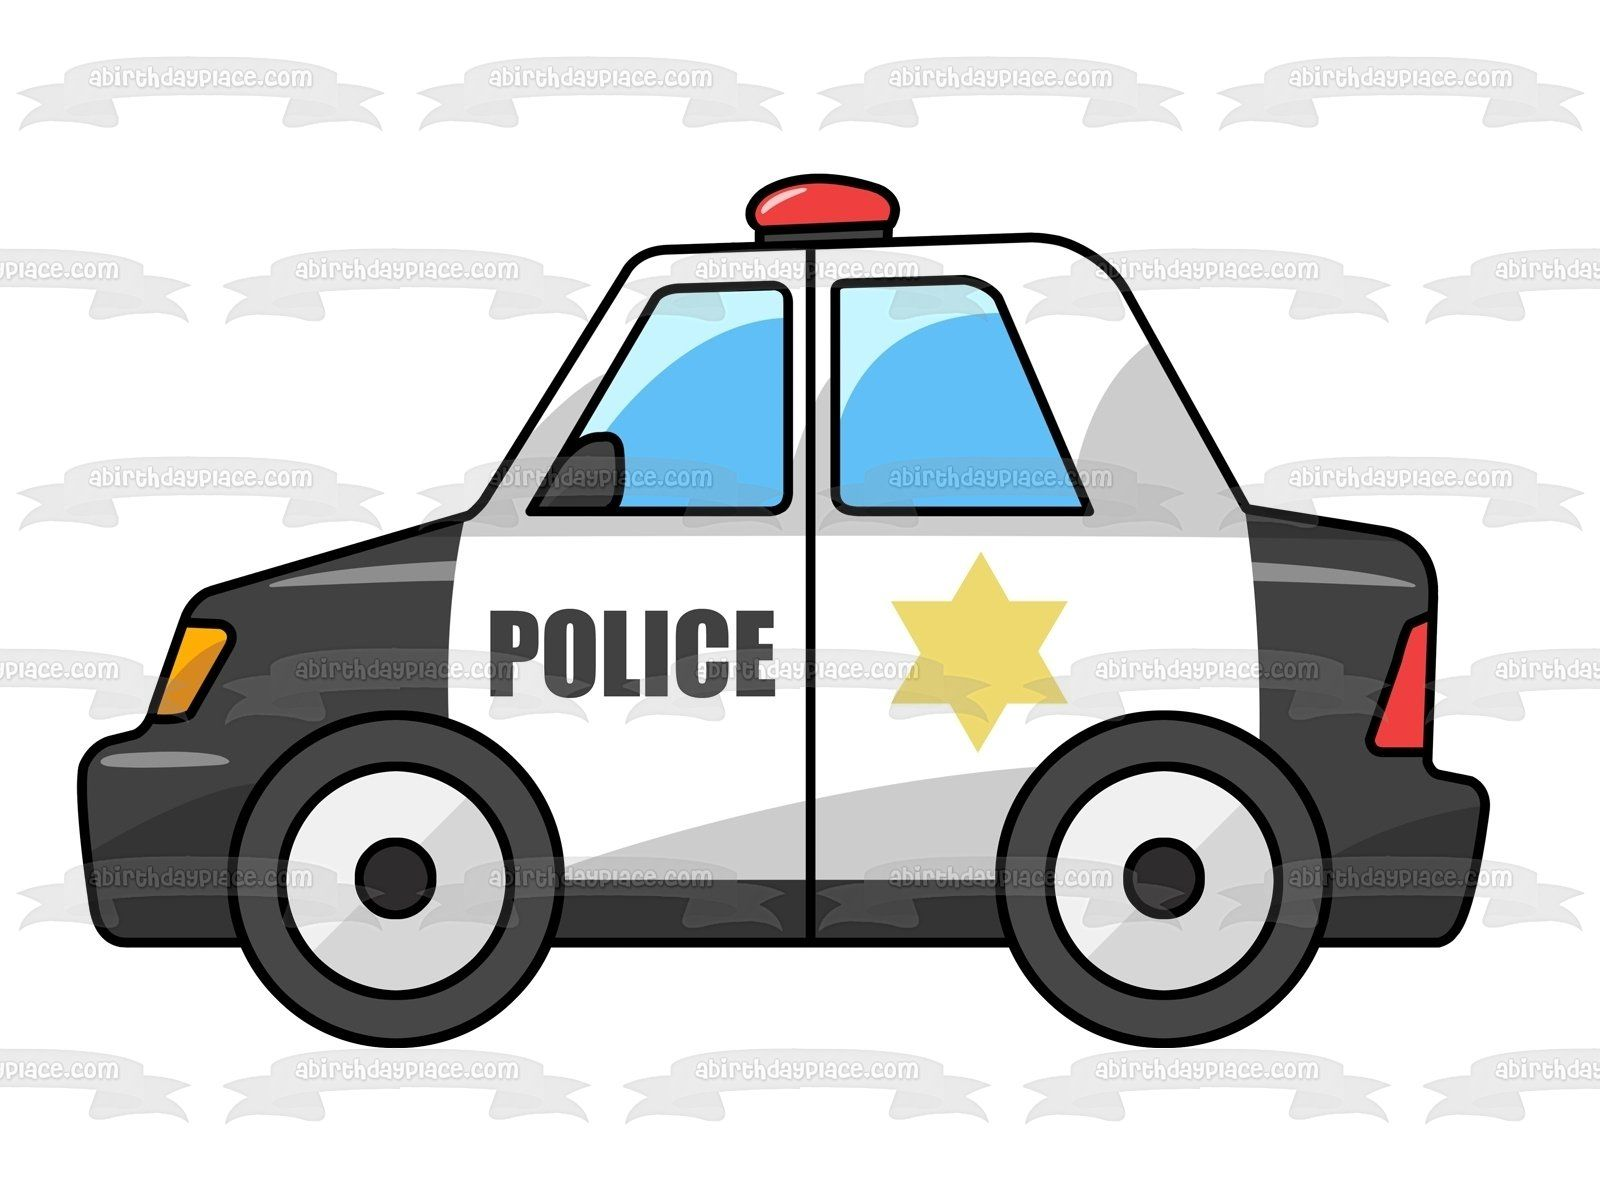 Cartoon Police Car Star Red Light Edible Cake Topper Image Abpid01663 In 2021 Art And Craft Videos Police Cars Police